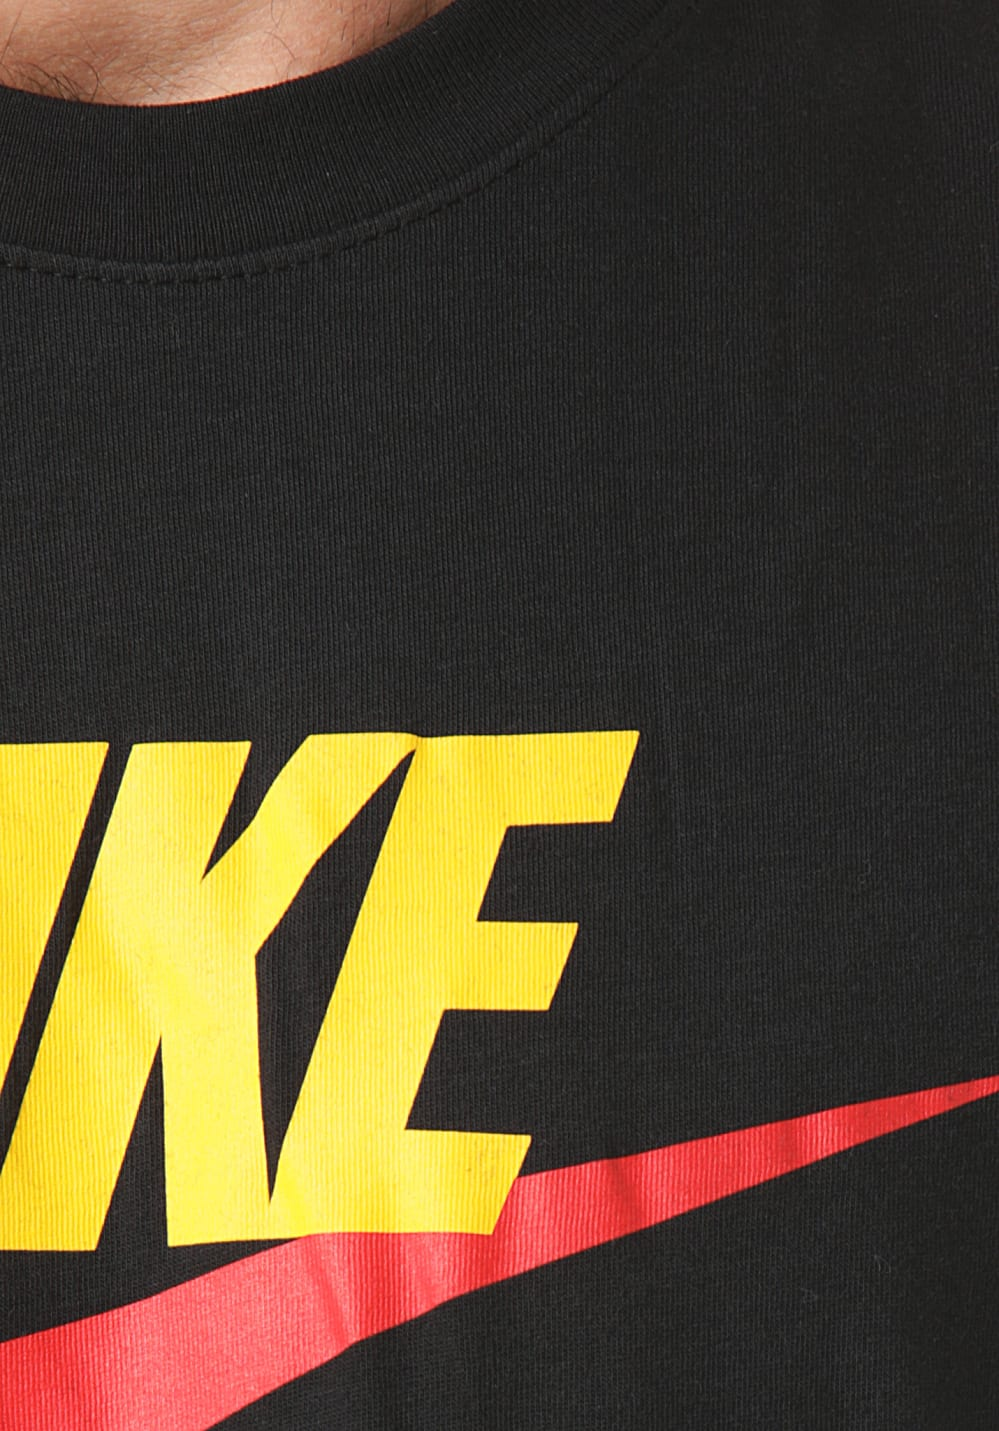 f2db1bfd8a6 Next. New. NIKE SPORTSWEAR. Icon Futura - T-Shirt for Men. €24.95. incl.  VAT plus shipping costs. Black Black White White